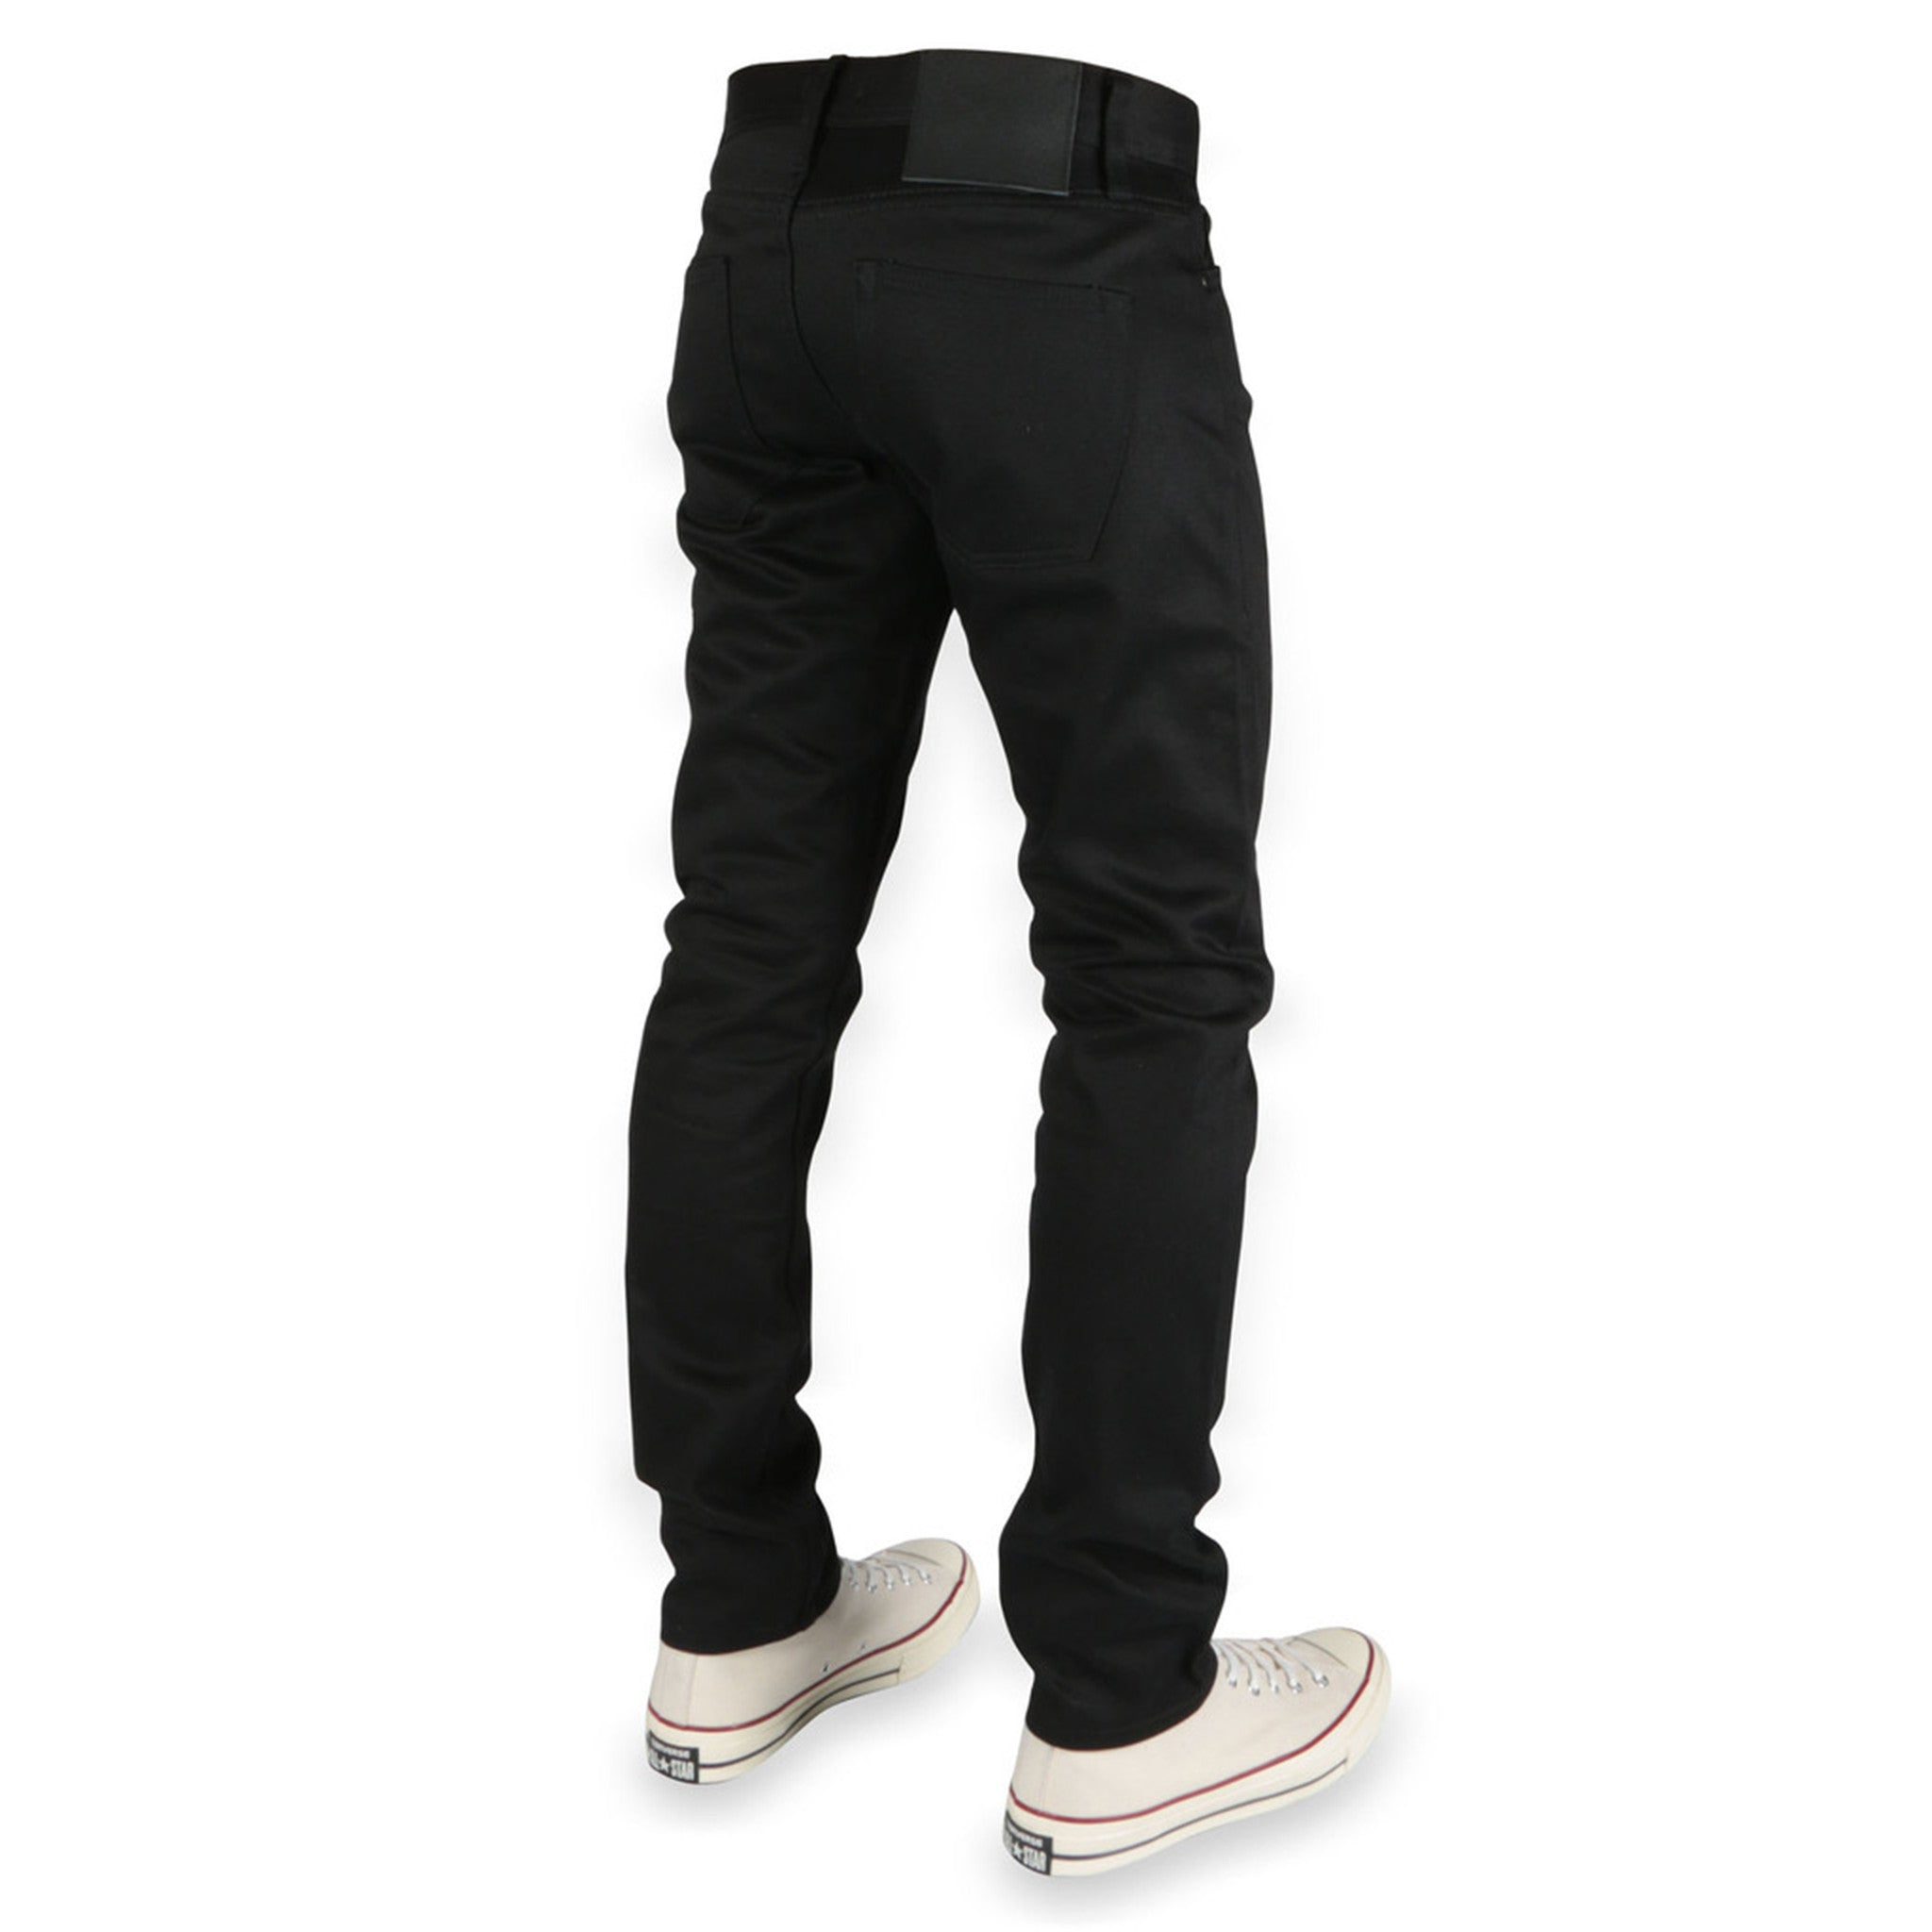 UB455 Tight Fit 13oz Black Selvedge Chino